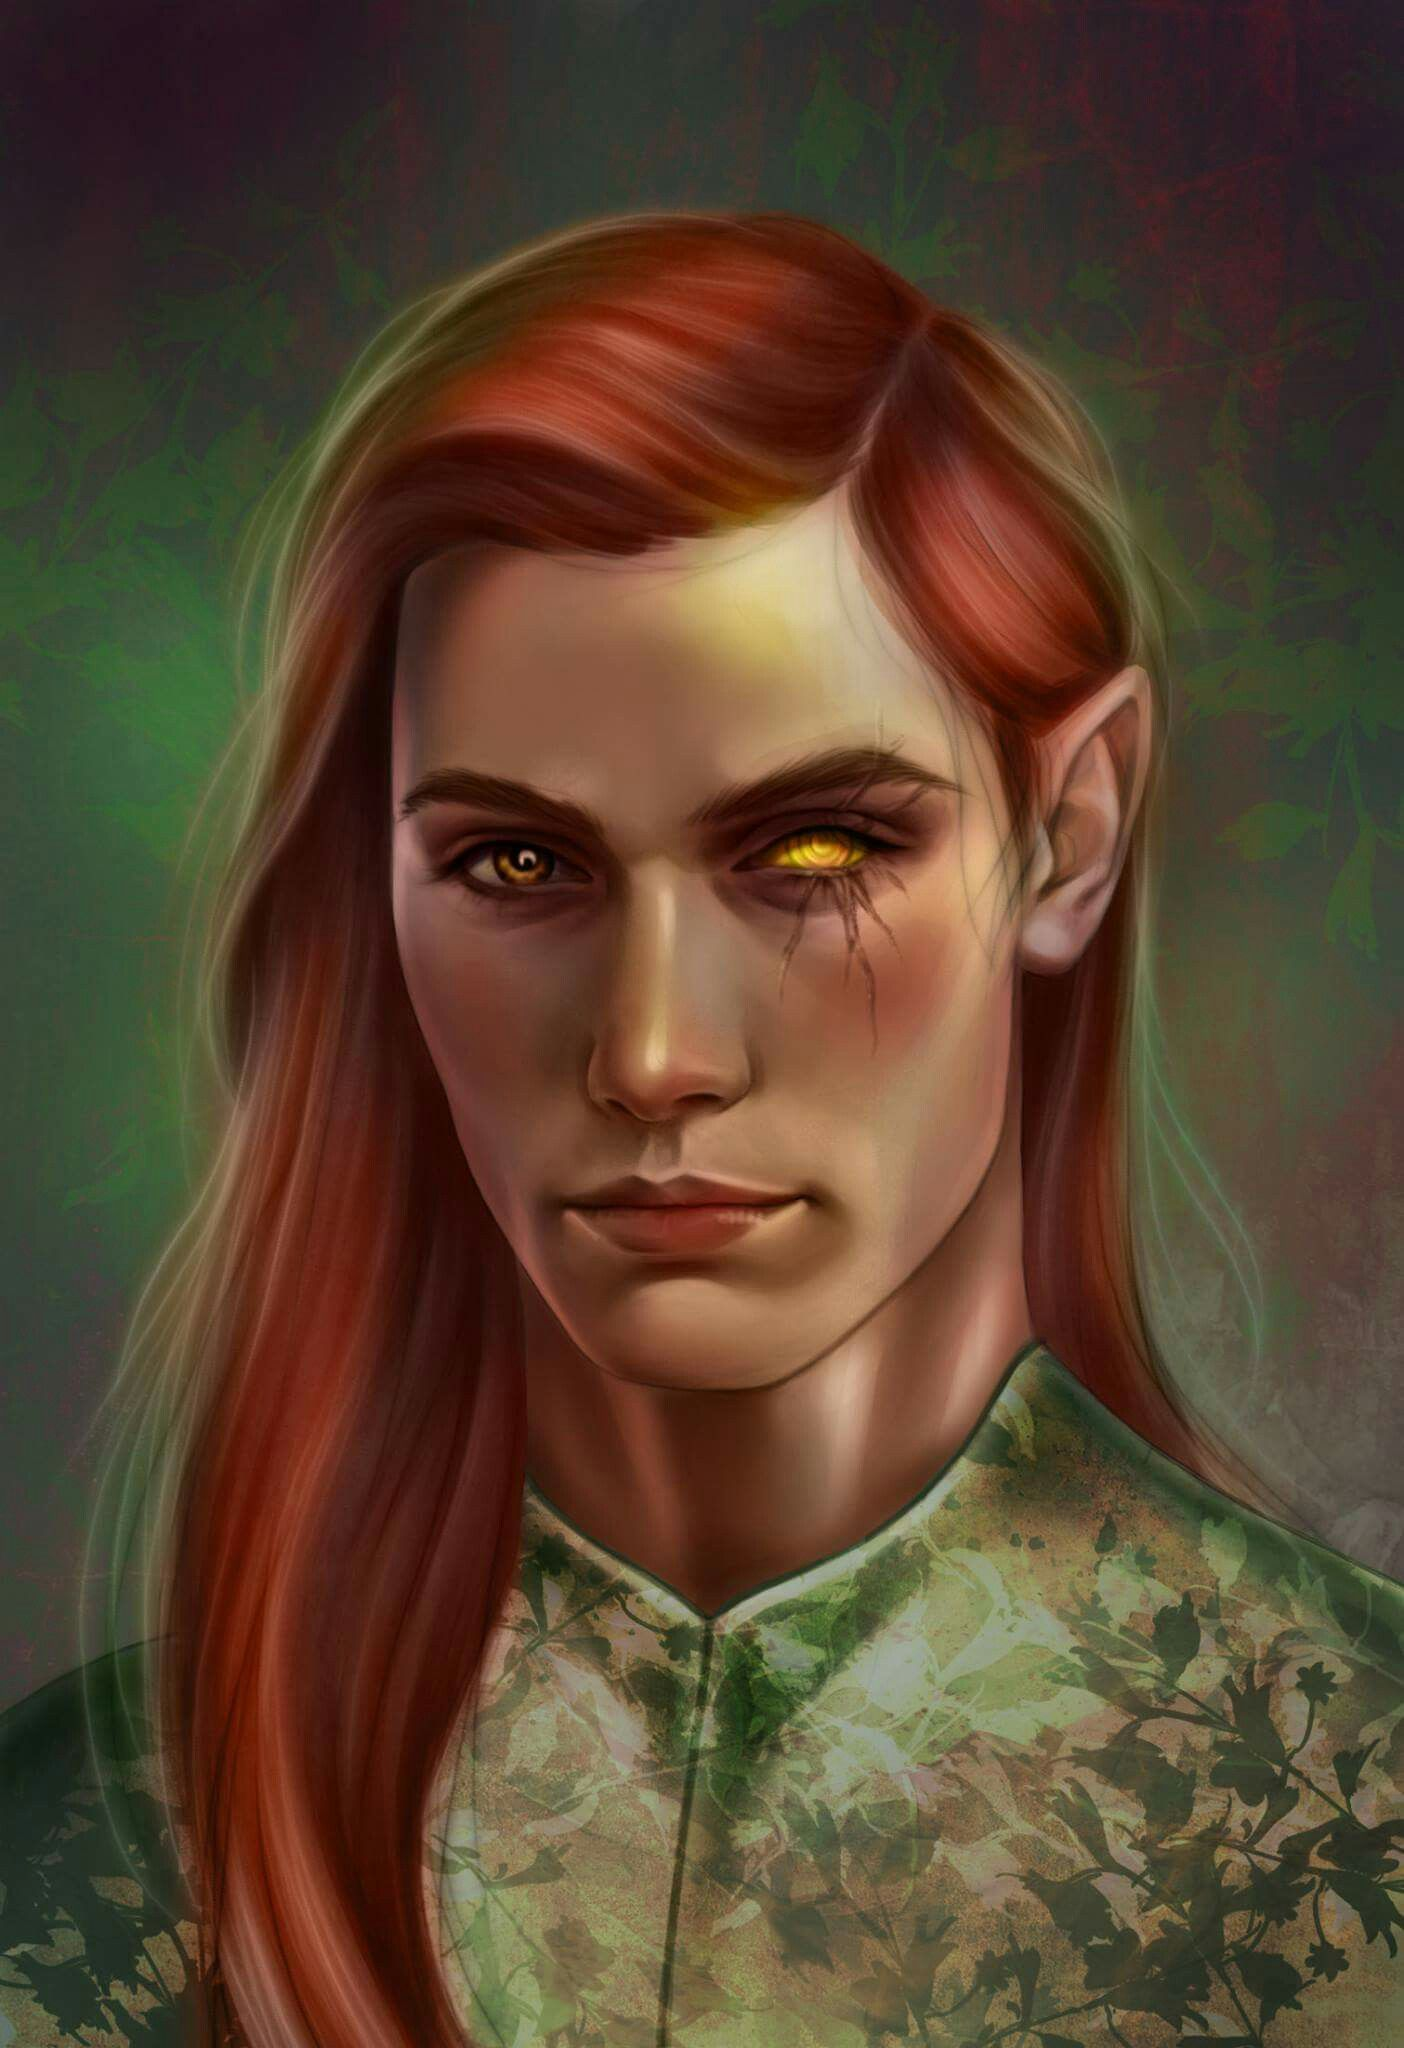 Lucien Acotar With Images A Court Of Mist And Fury Sarah J